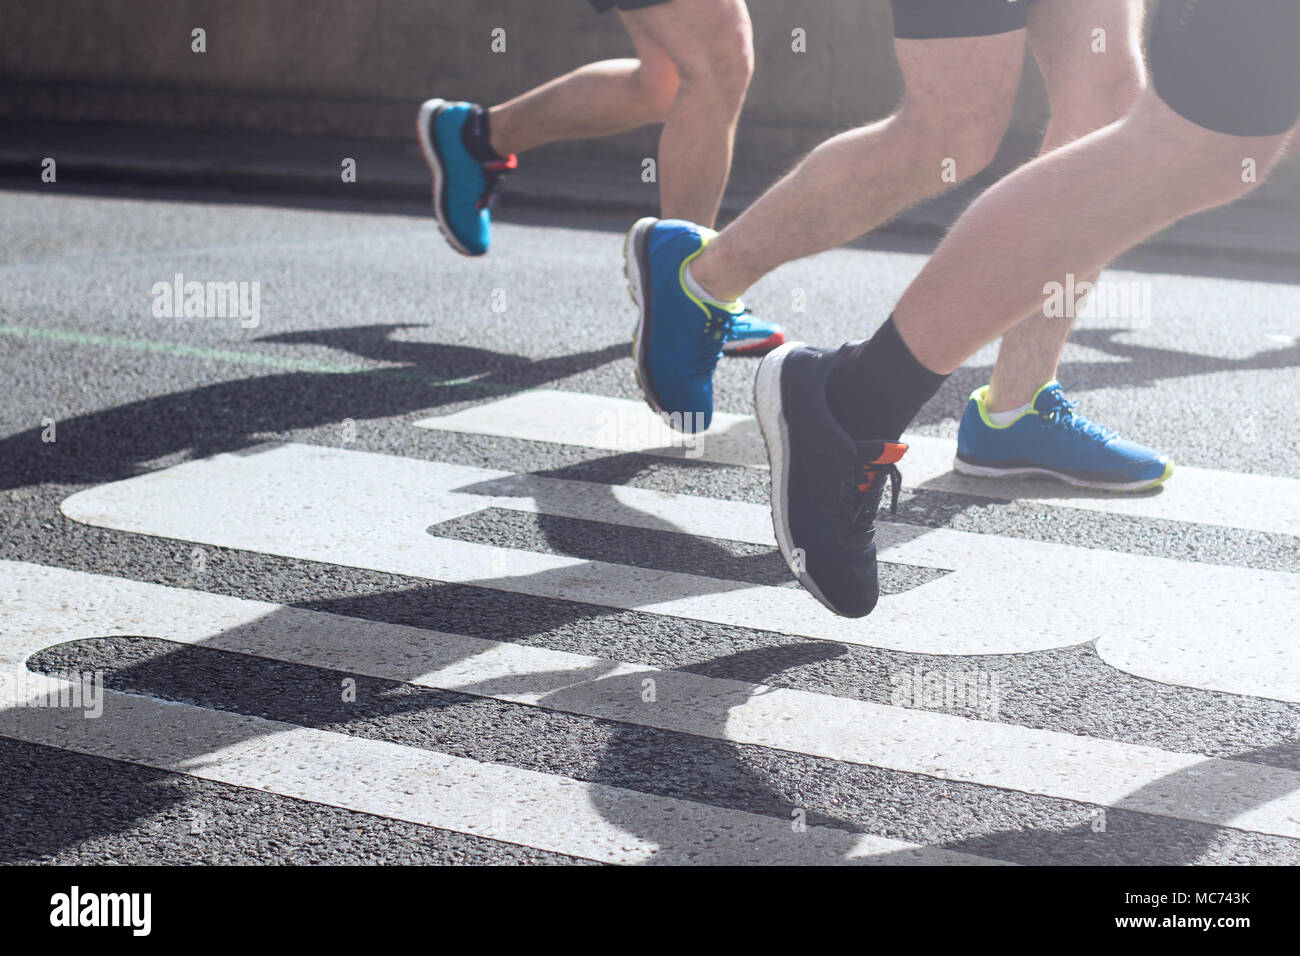 closeup view of synchronized marathon runners feet and legs with motion blur running in the light of the morning on city tarmac road - Stock Image